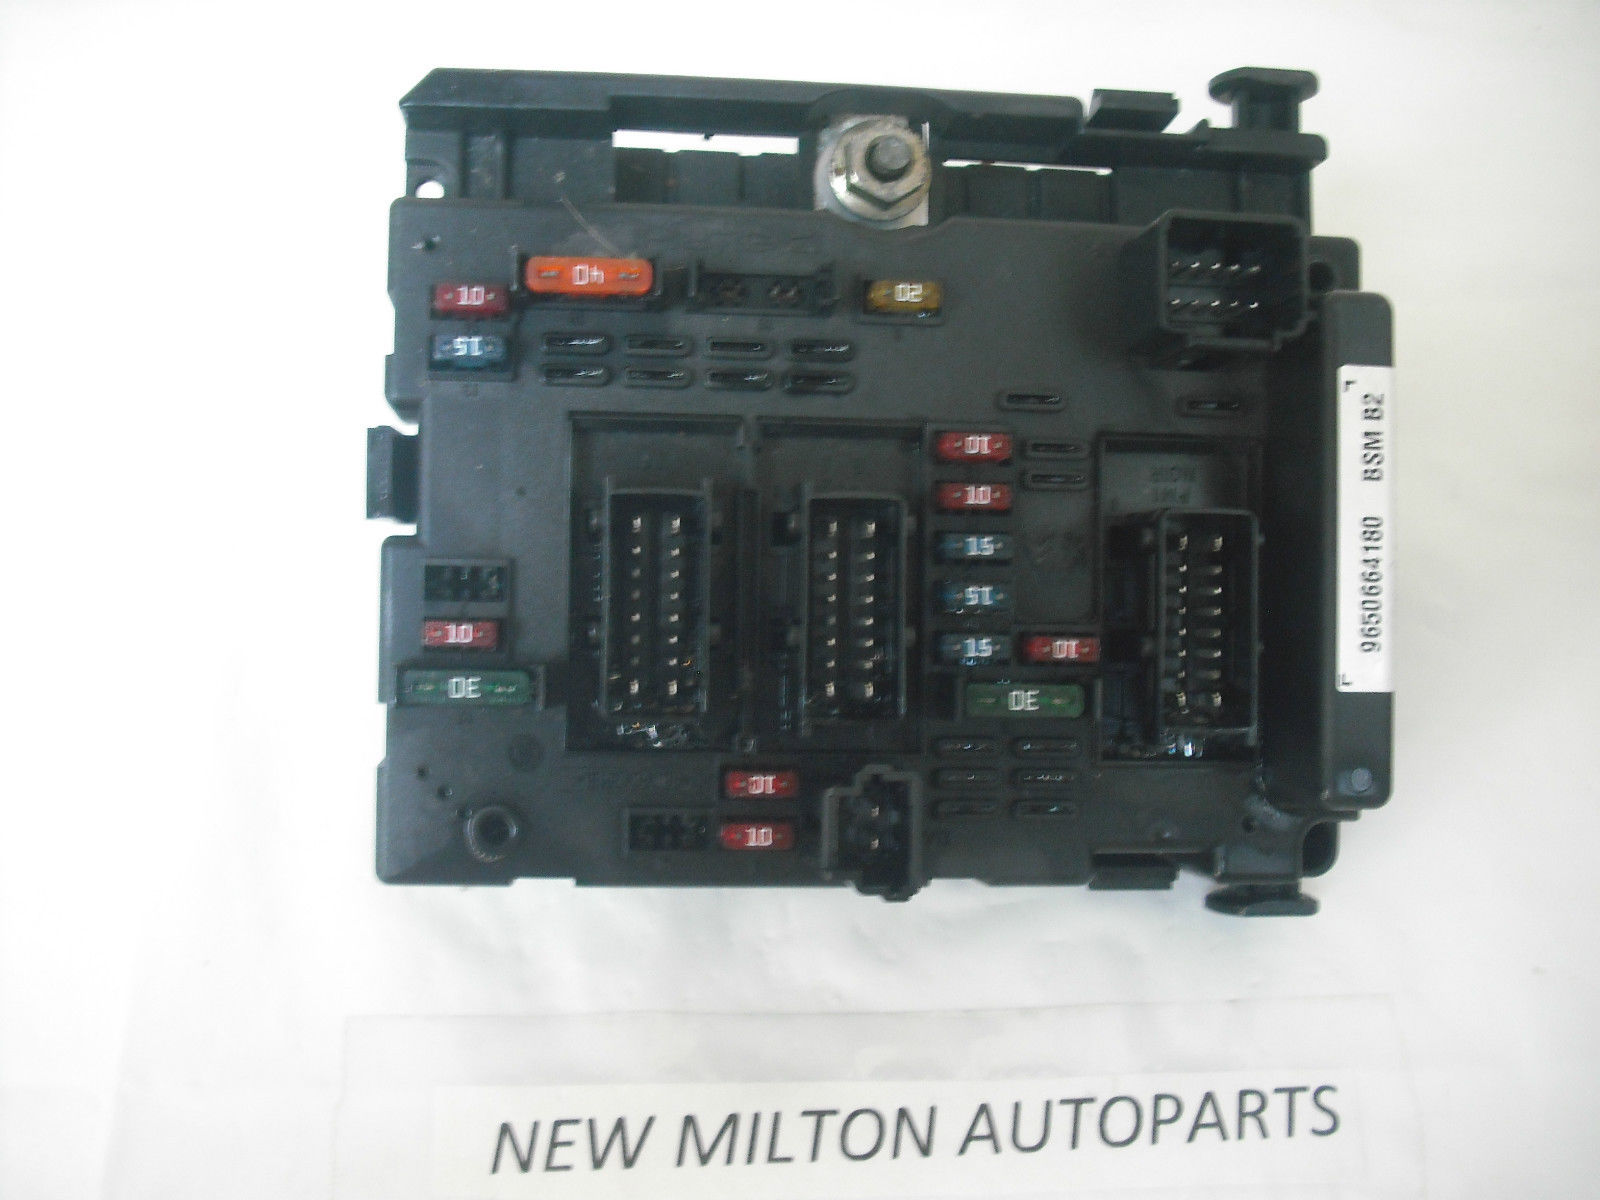 a genuine peugeot 207 307 1.4 1.6 2.0 hdi etc engine bay fuse box control module bsm b2 9650664180 1009 p a genuine peugeot 207 307 1 4 1 6 2 0 hdi etc engine bay fuse box peugeot 307 fuse box location hatchback at edmiracle.co